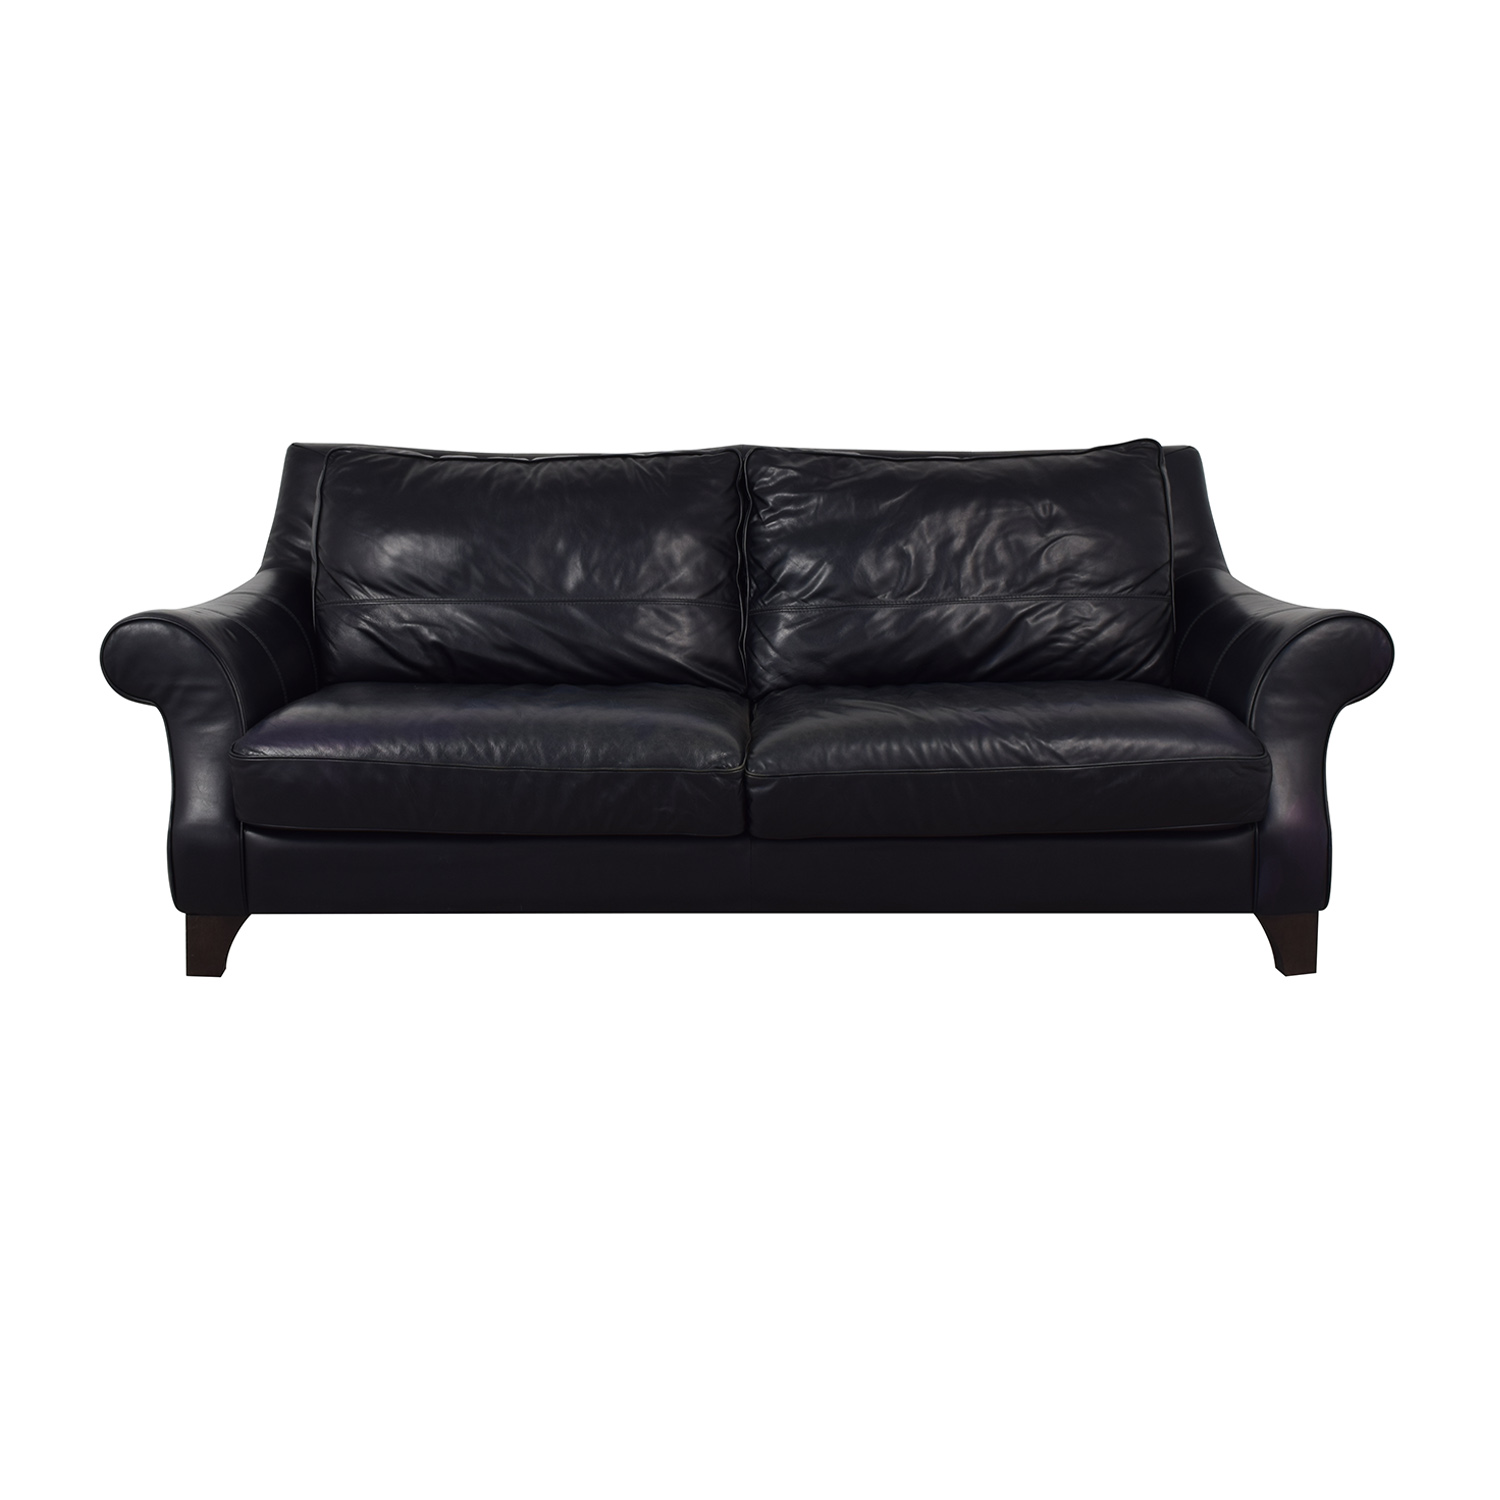 Natuzzi Natuzzi Leather Sofa coupon